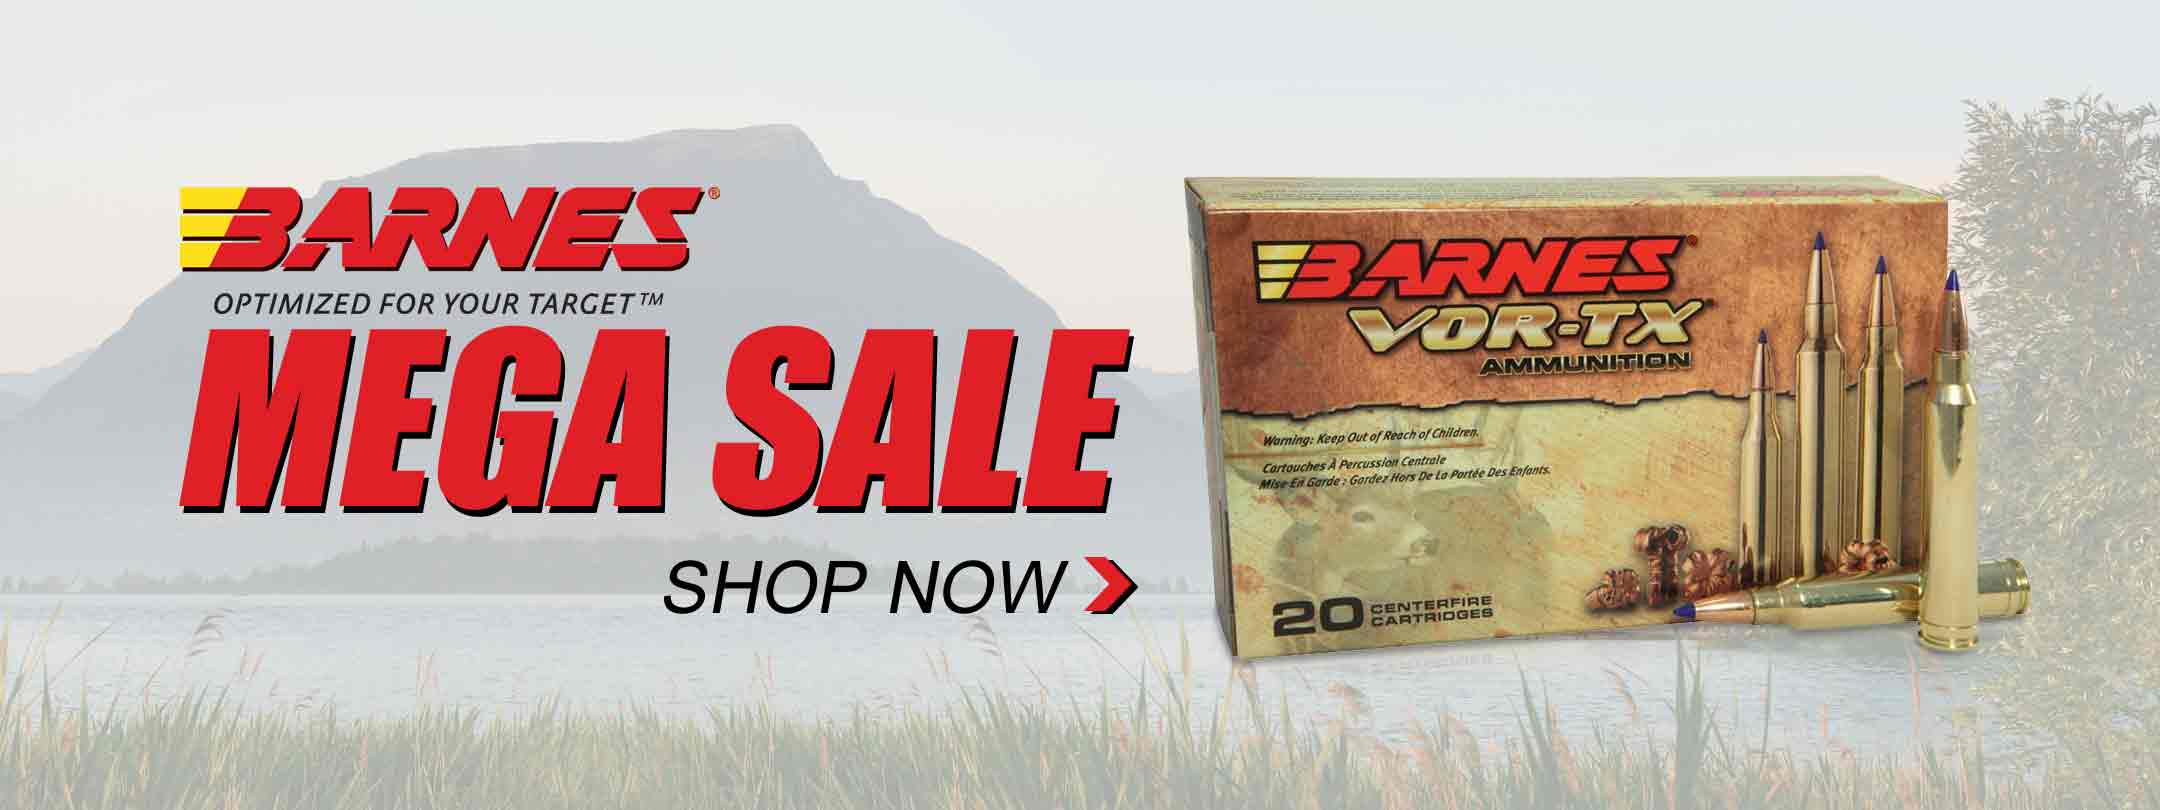 Barnes Mega Sale! Save on Bullets and Ammo